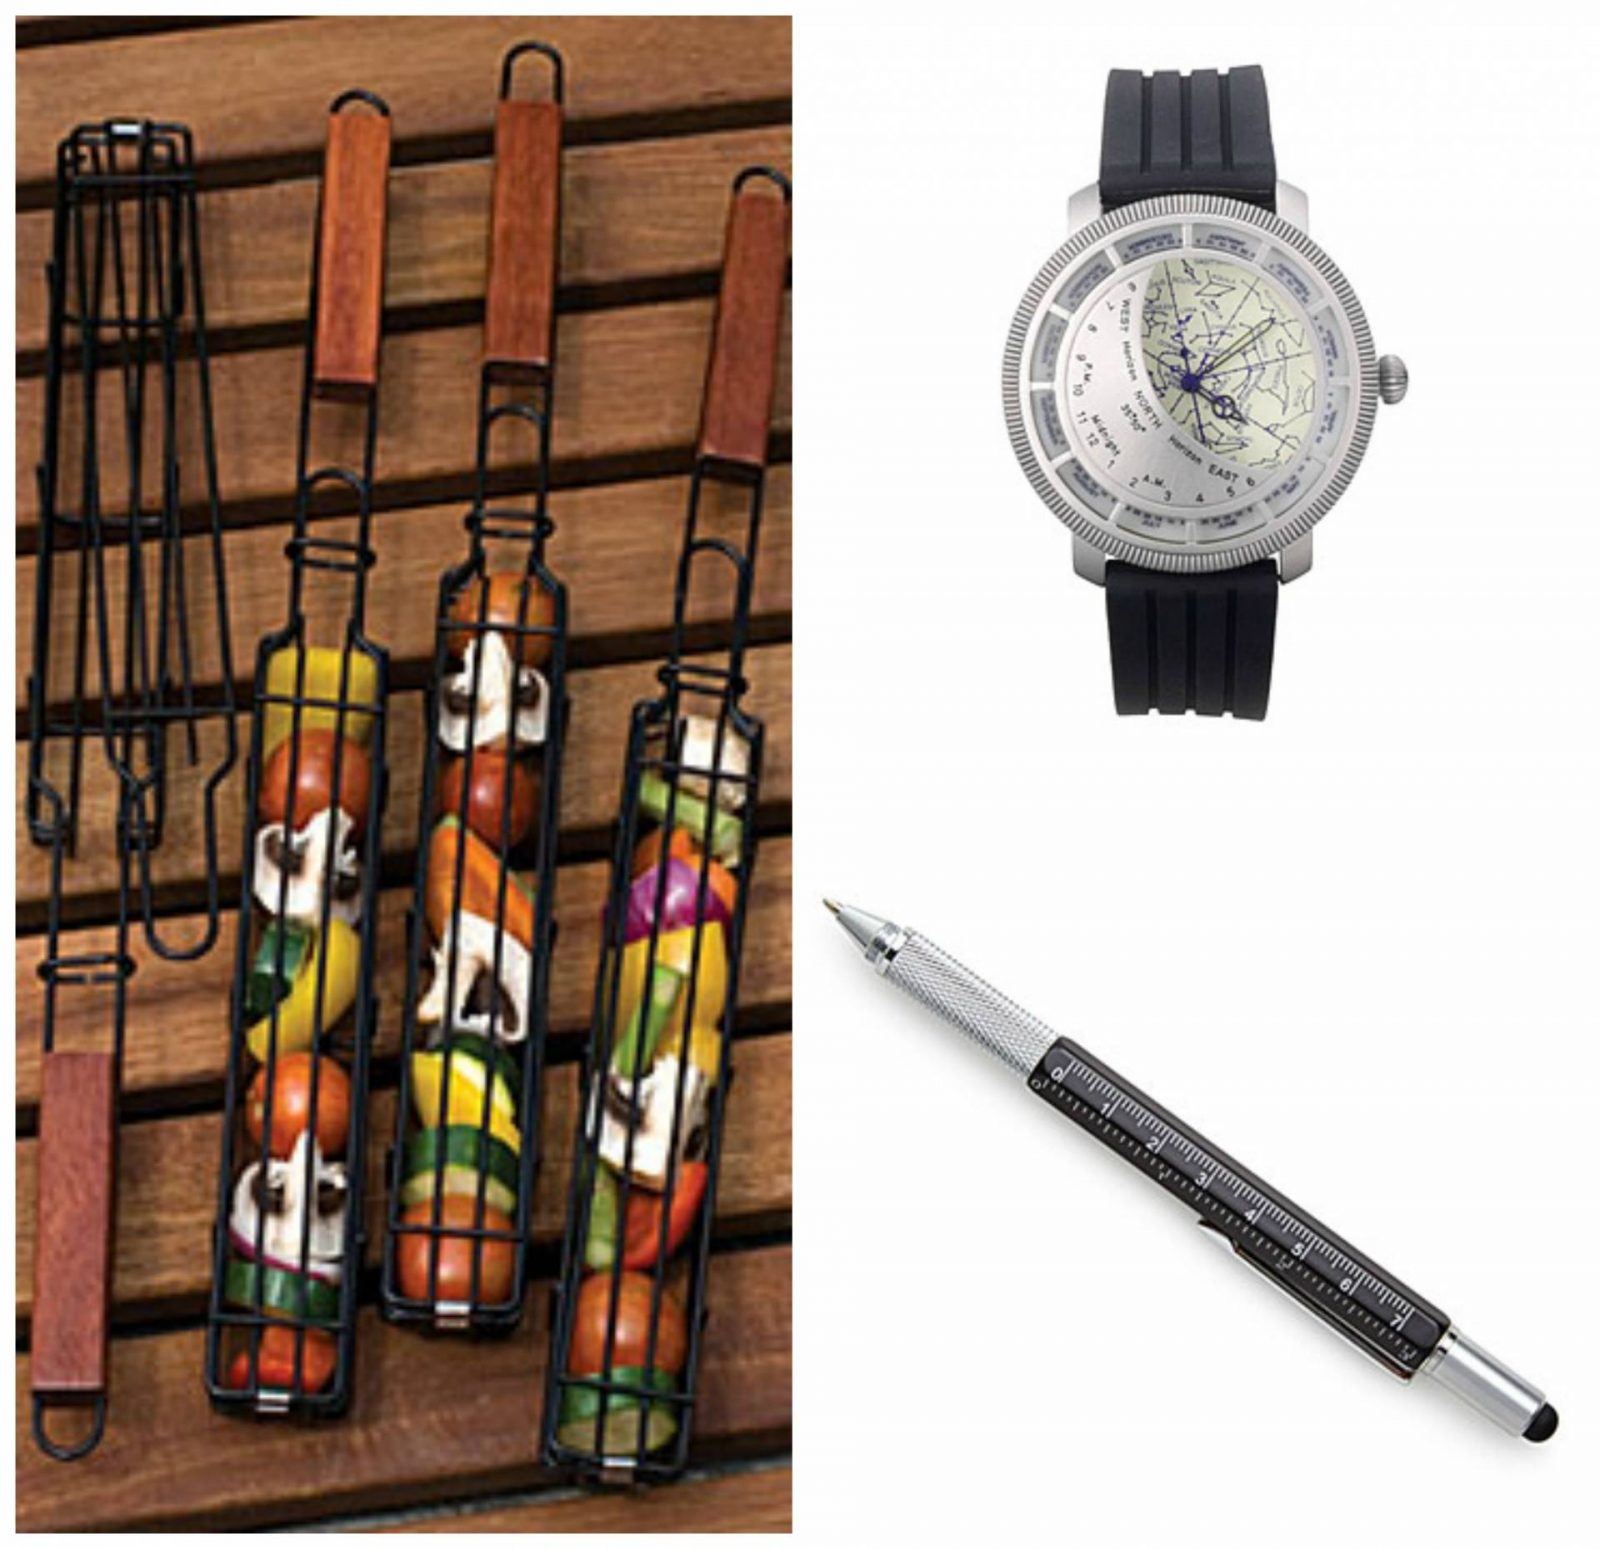 Uncommon Goods gift ideas for men